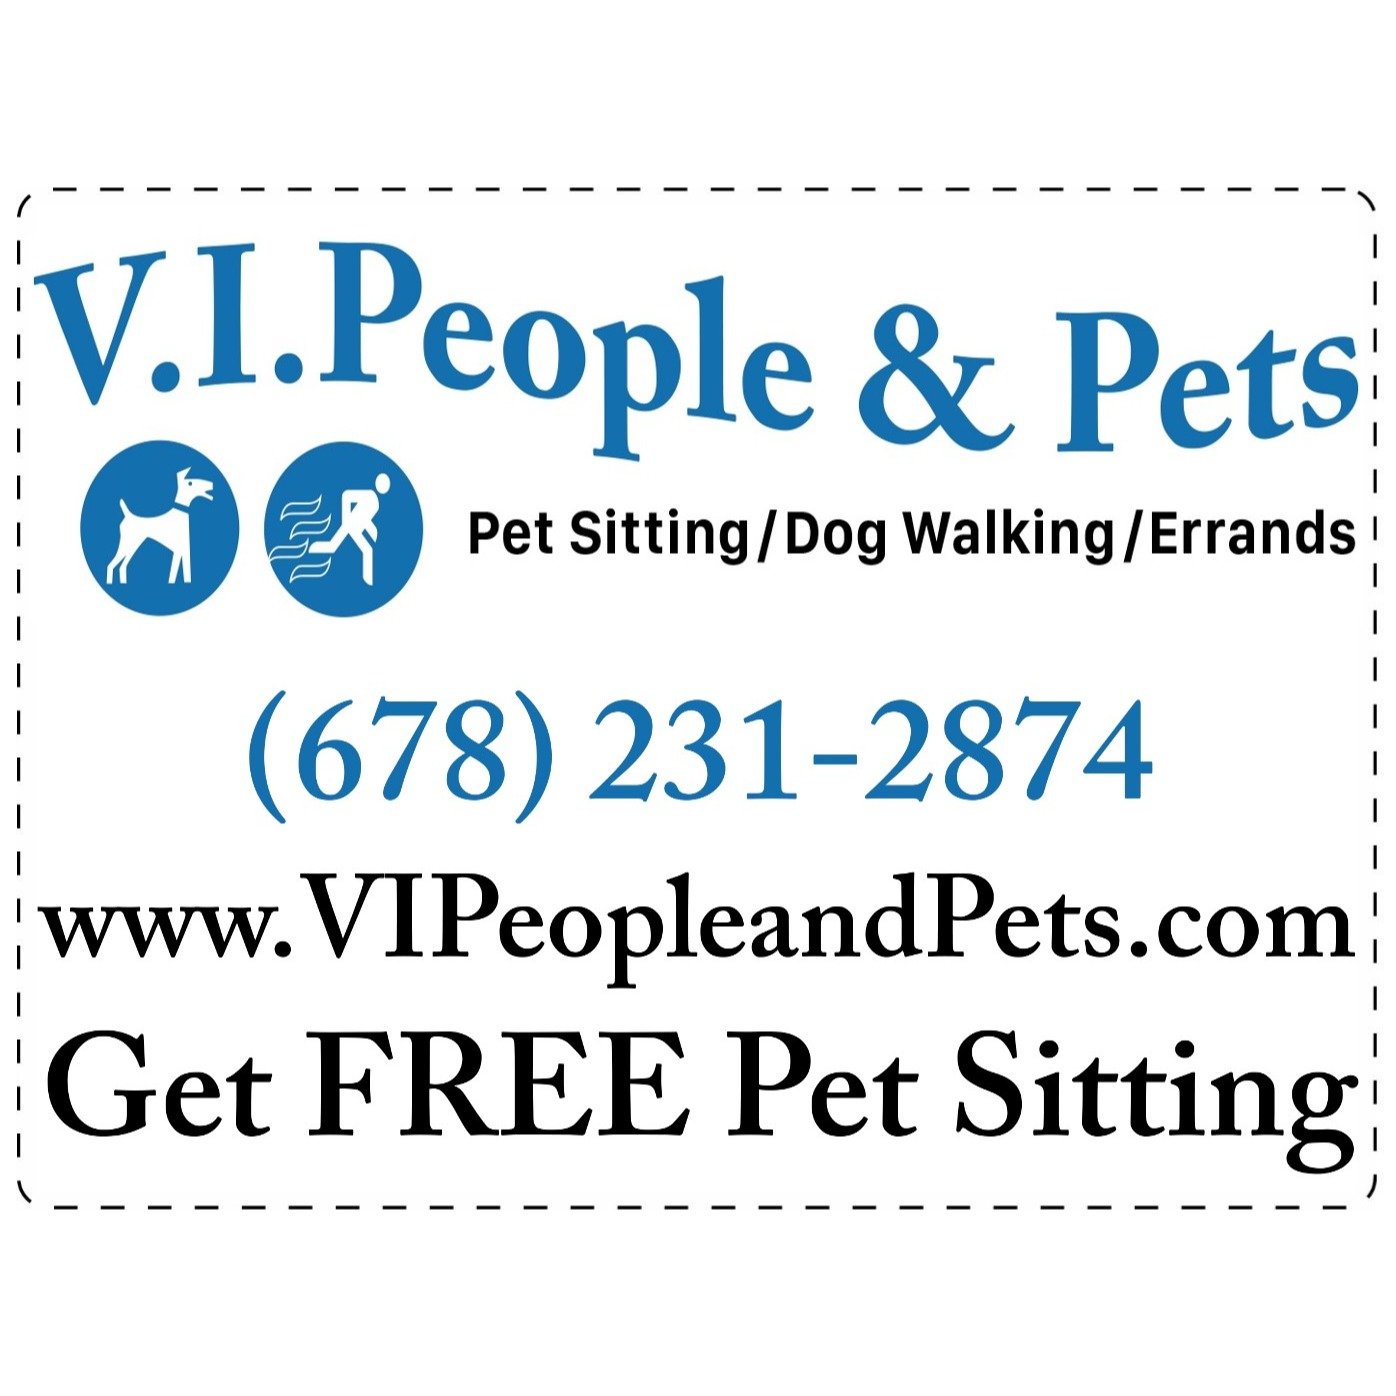 V.I.People & Pets - Kennesaw, GA 30144 - (678)231-2874 | ShowMeLocal.com